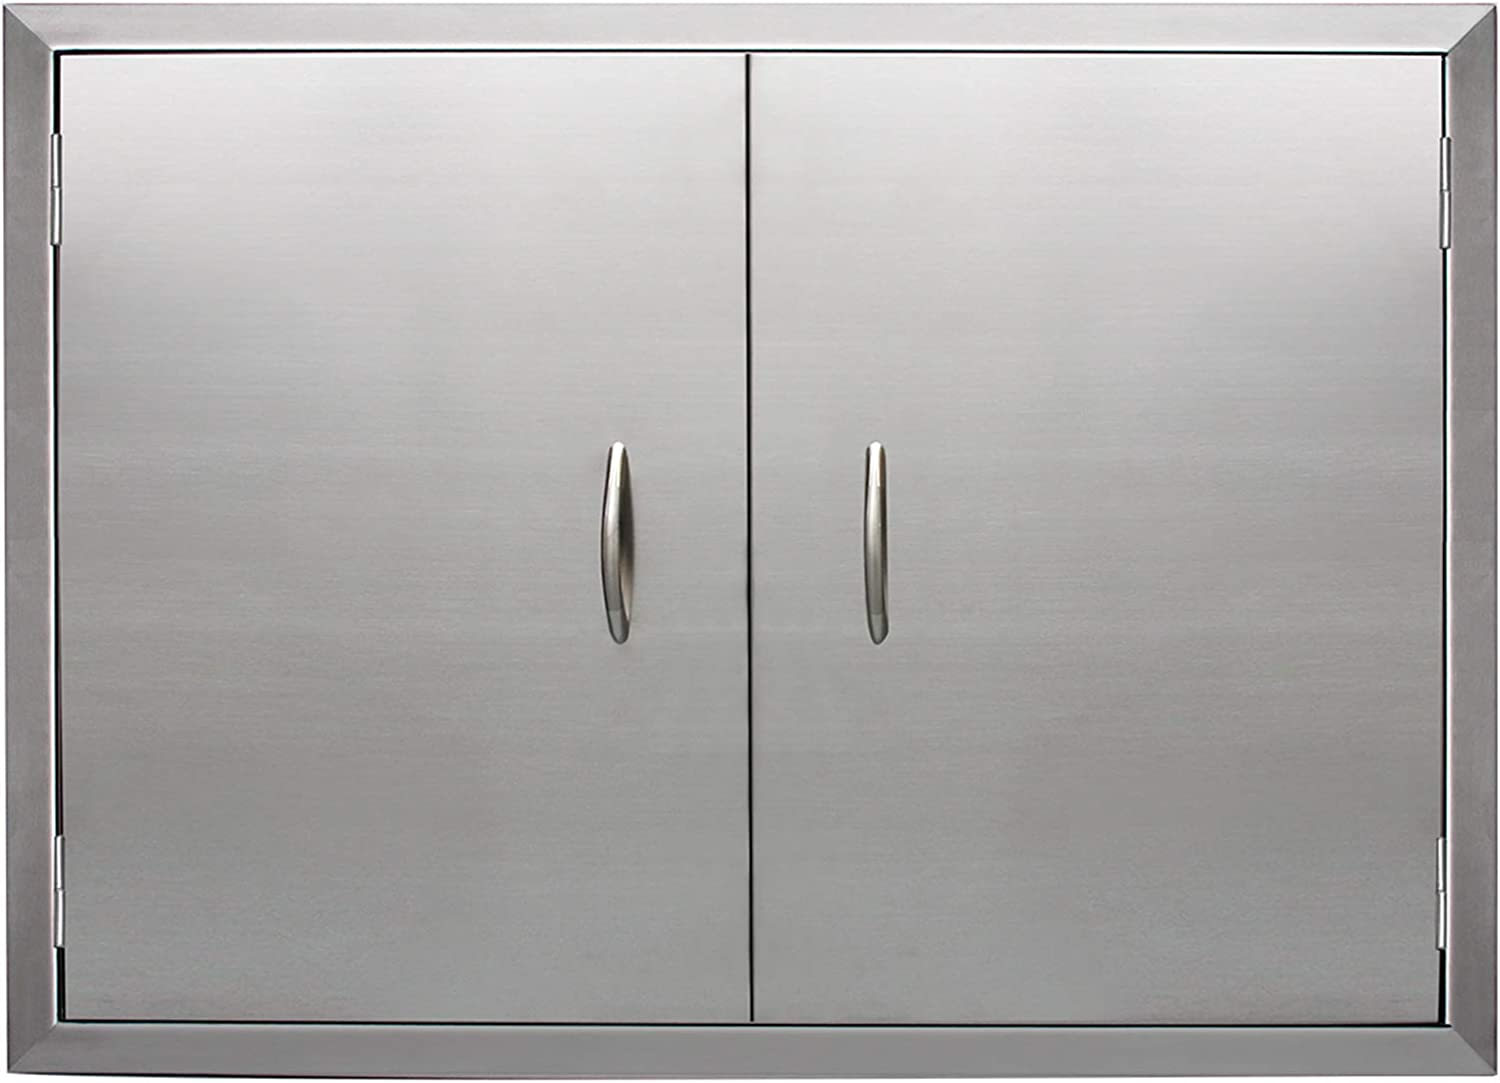 Apwone Outdoor Kitchen Doors Double Bbq Access Doors Removable 304 Stainless Steel Doors With Chromium Plated Handle 31 X 24 Home Improvement